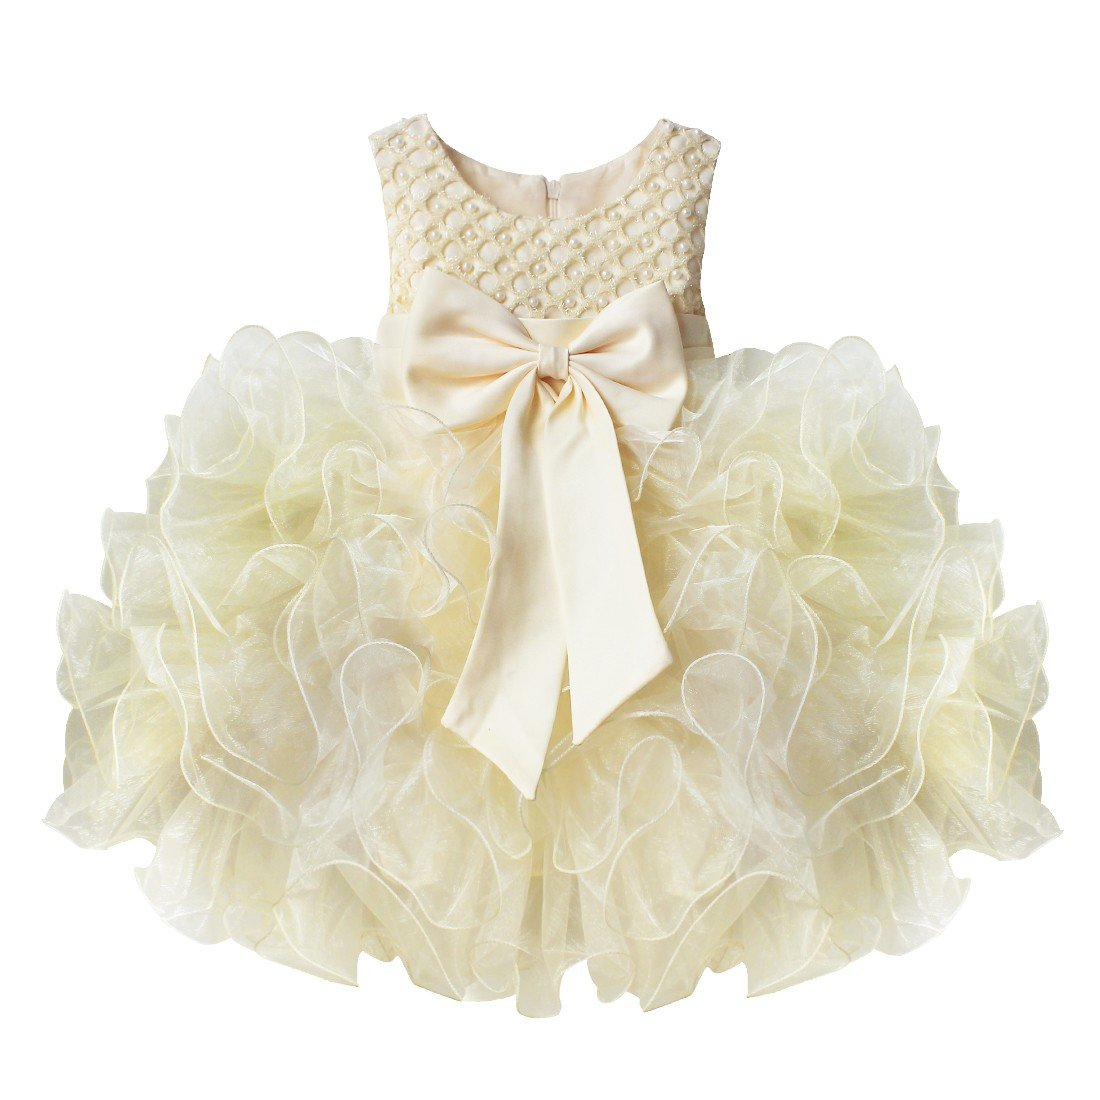 984d6cdd5b71a Amazon.com: TiaoBug Baby Girls Flower Ruffled Princess Bowknot Wedding  Pageant Christening Baptism Communion Party Dress: Clothing